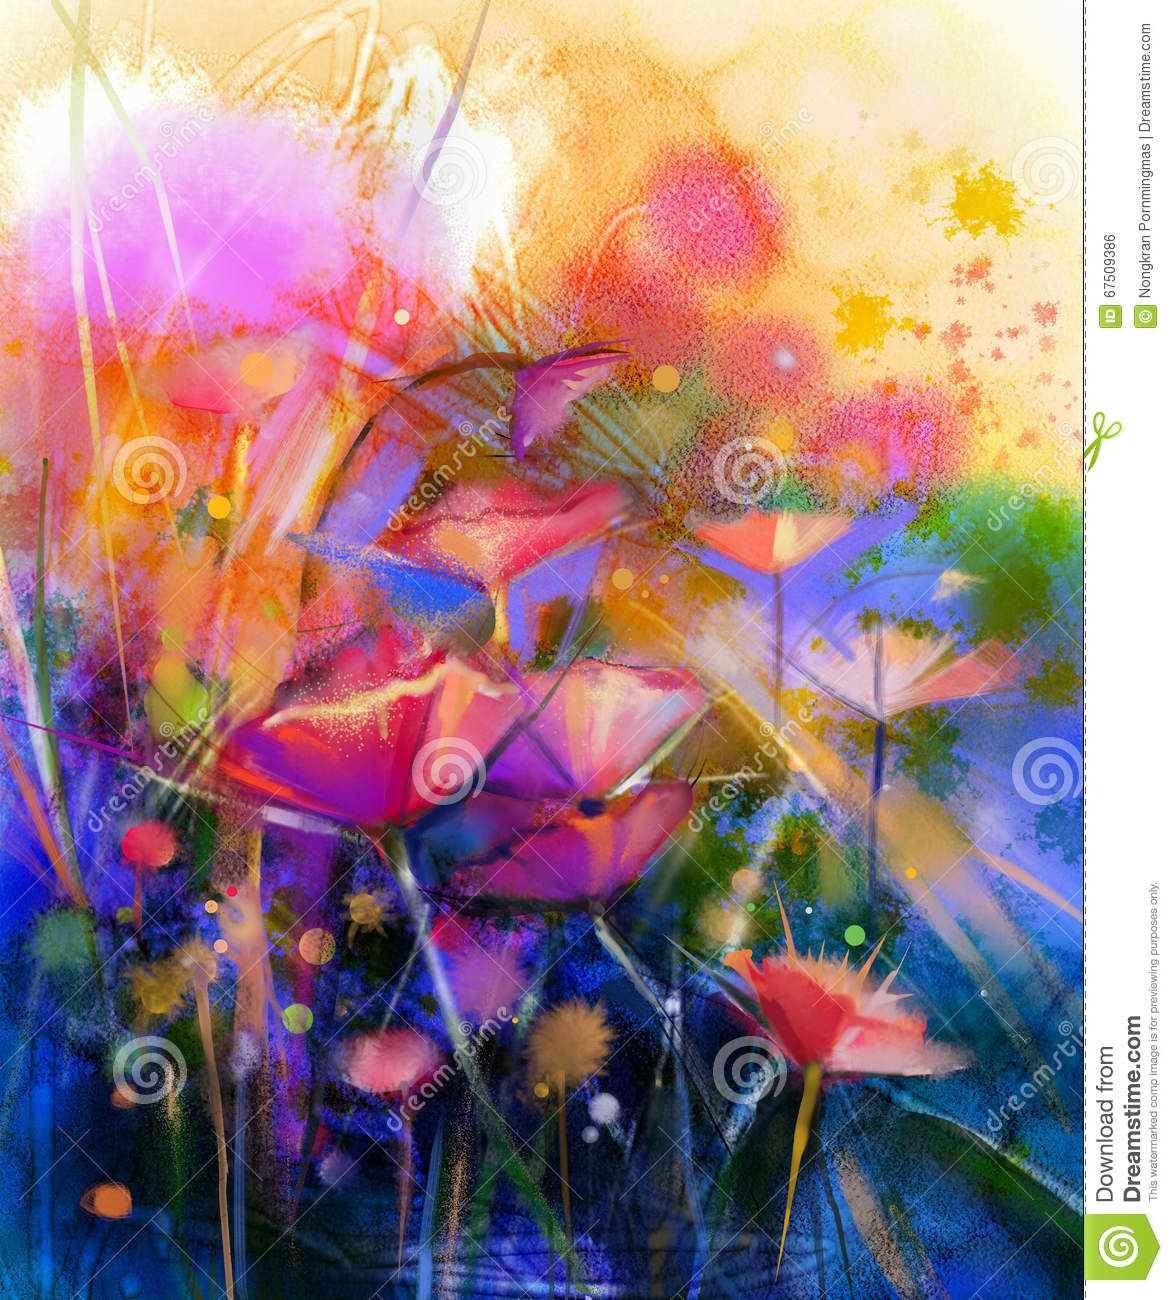 peinture abstraite d'aquarelle de fleur illustration stock - image